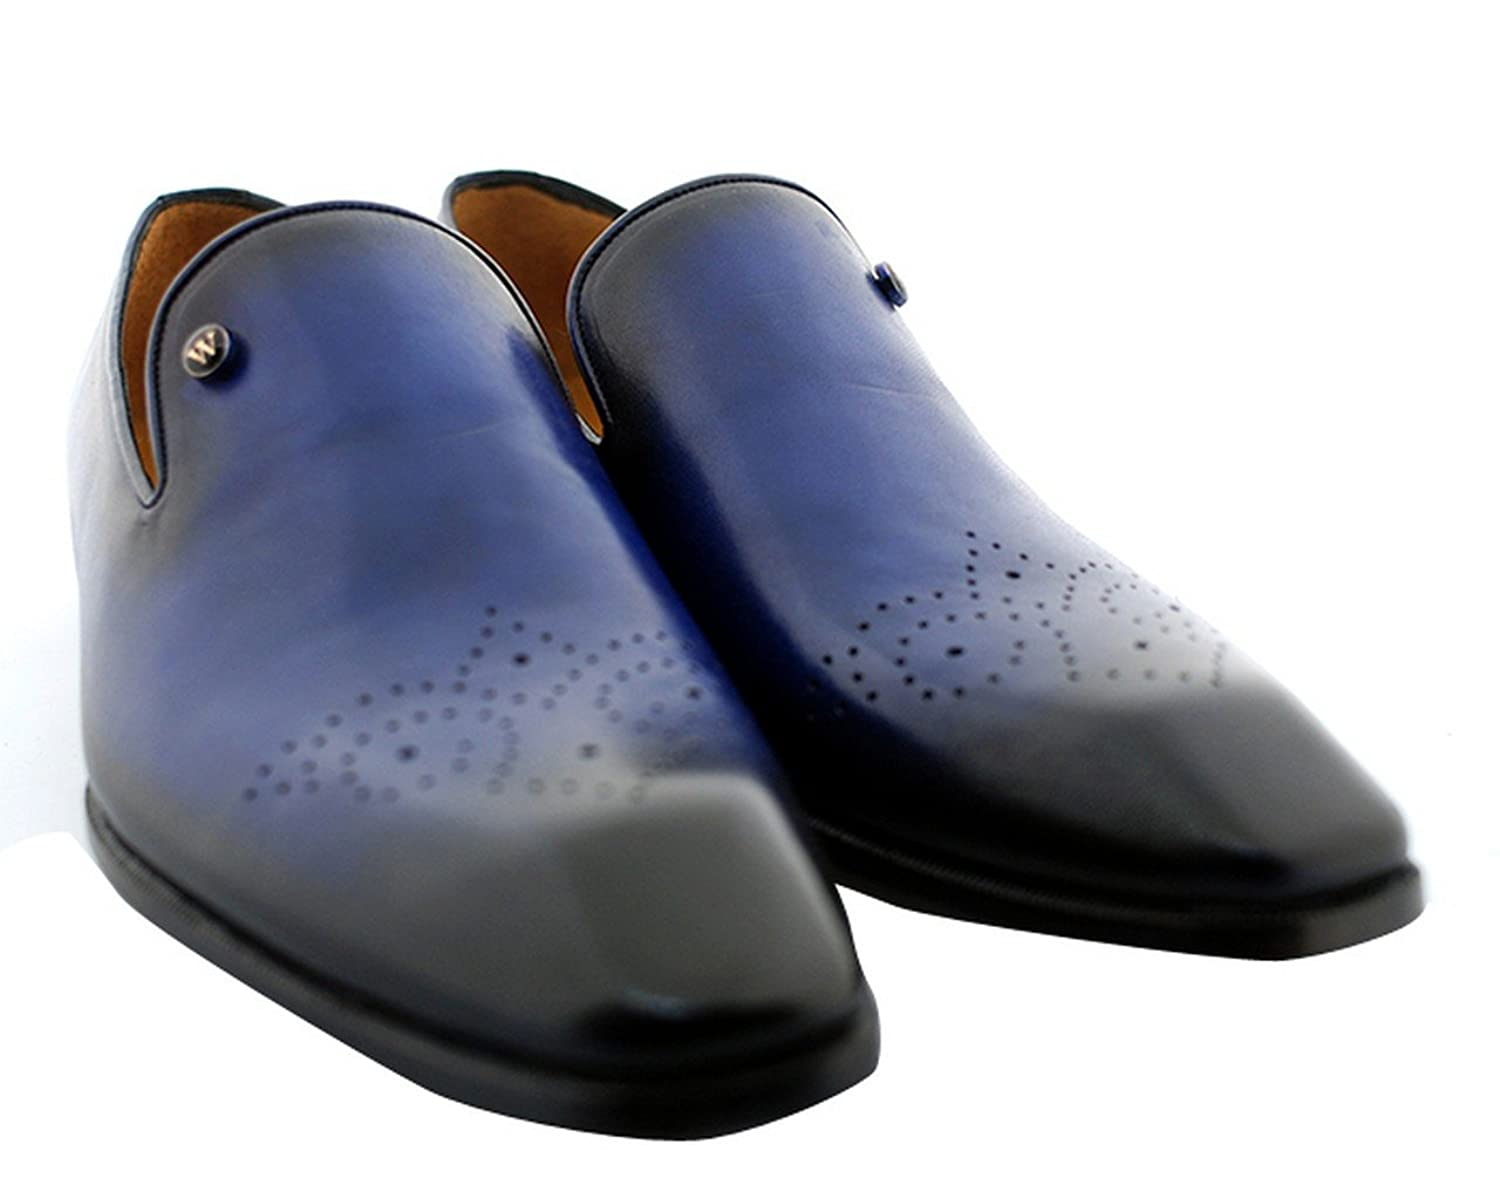 Oscar William Blue Oscar Men's Luxury Classic Handmade Leather Shoes